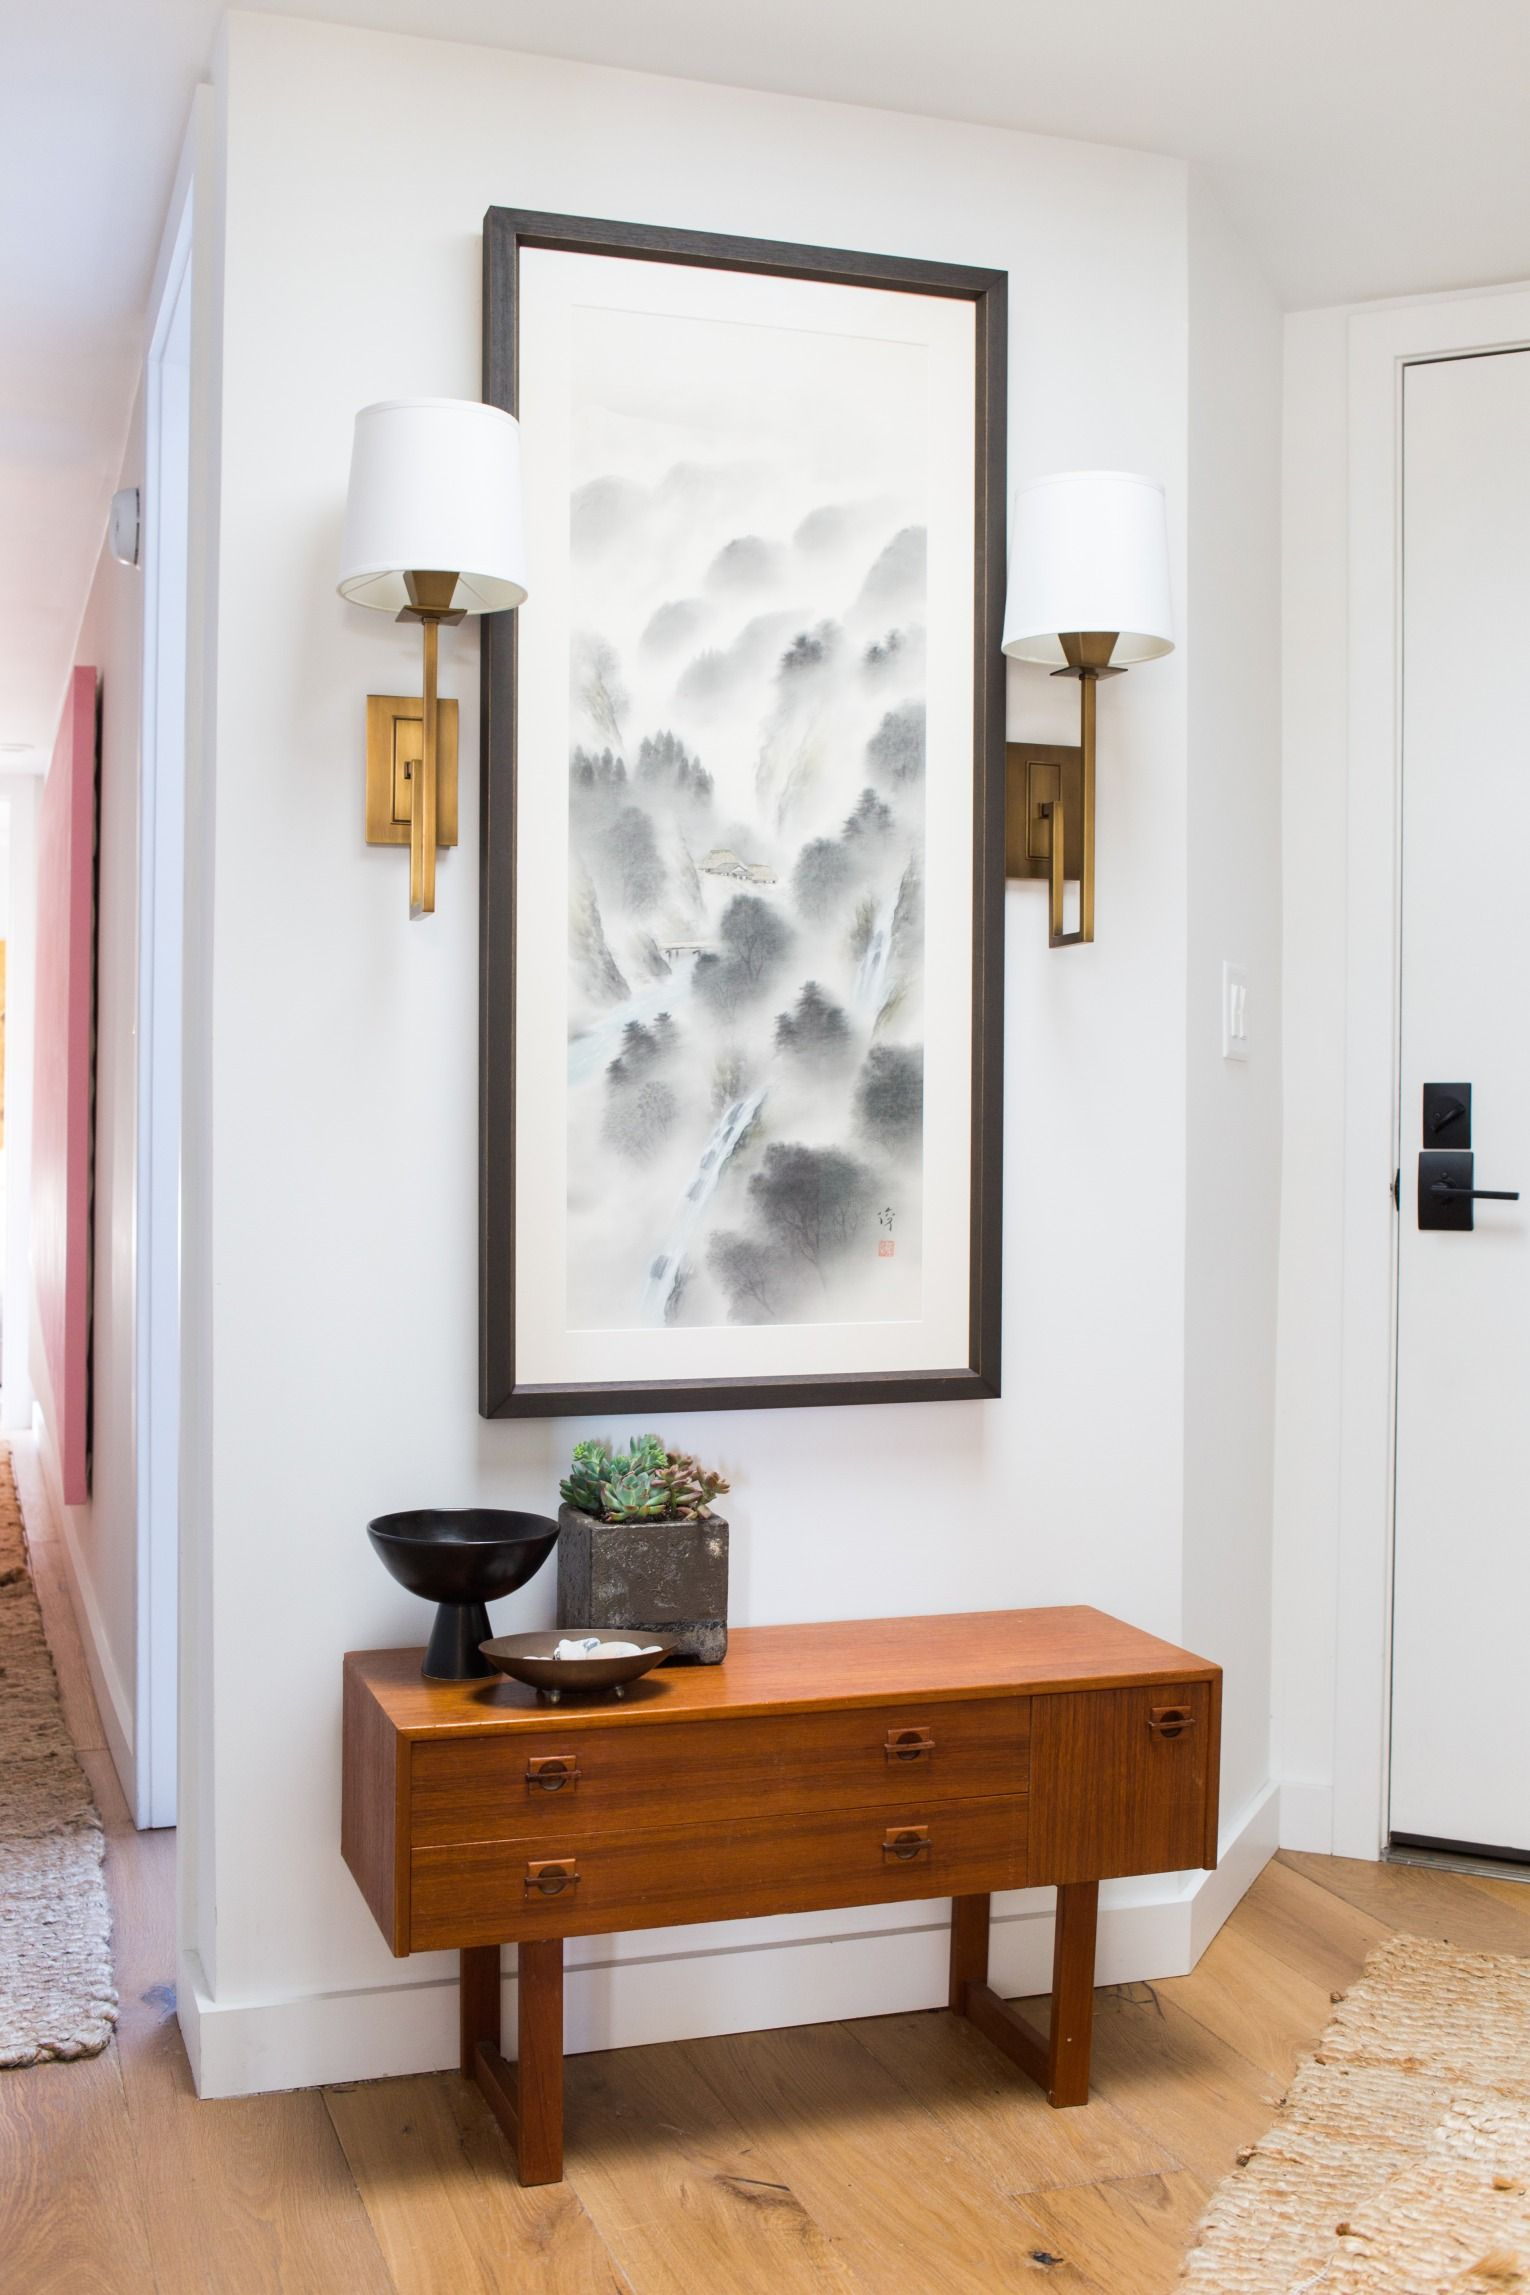 Wohndesign interieur schlafzimmer before and after  orlando soriaus socal home tour  home  pinterest